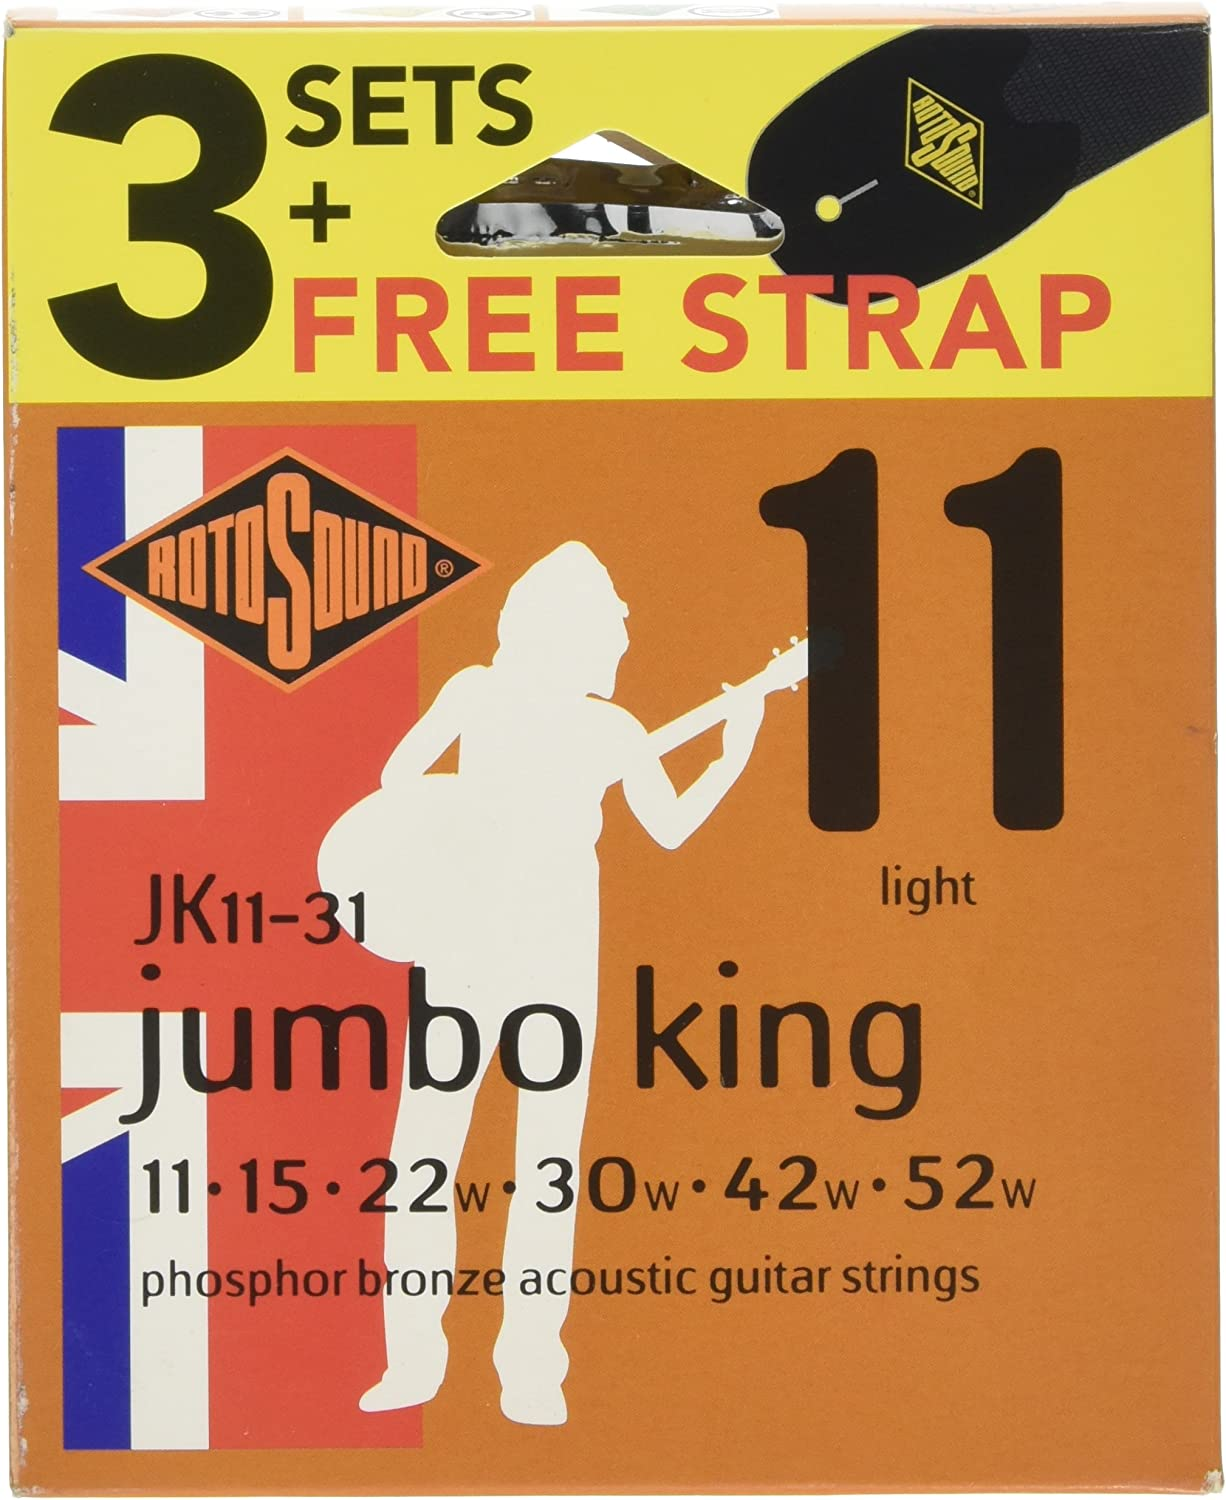 Ranking TOP10 Rotosound OFFicial shop JK11-31 Acoustic Guitar Strings of Pack 3 Strap with